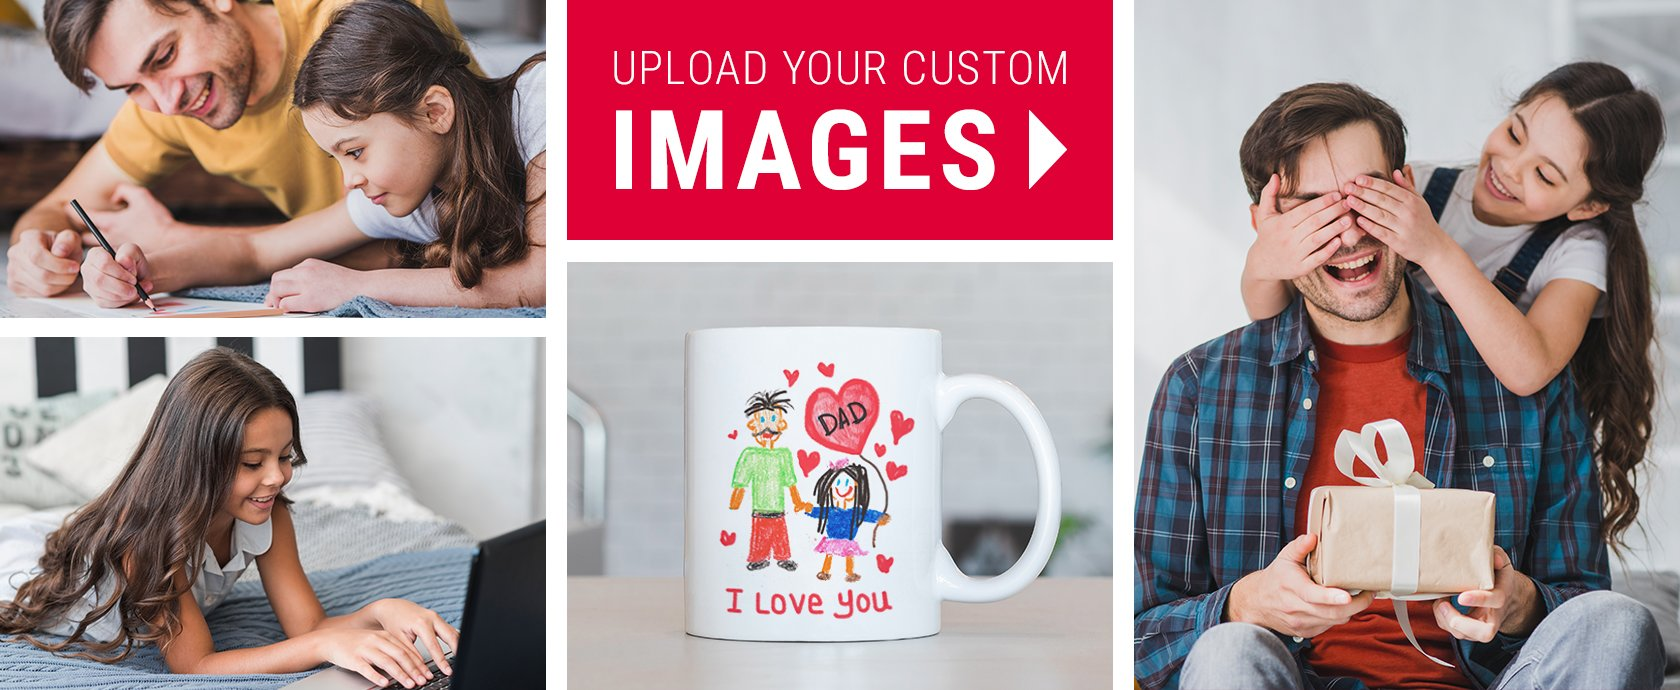 Customized Photo Upload Gifts